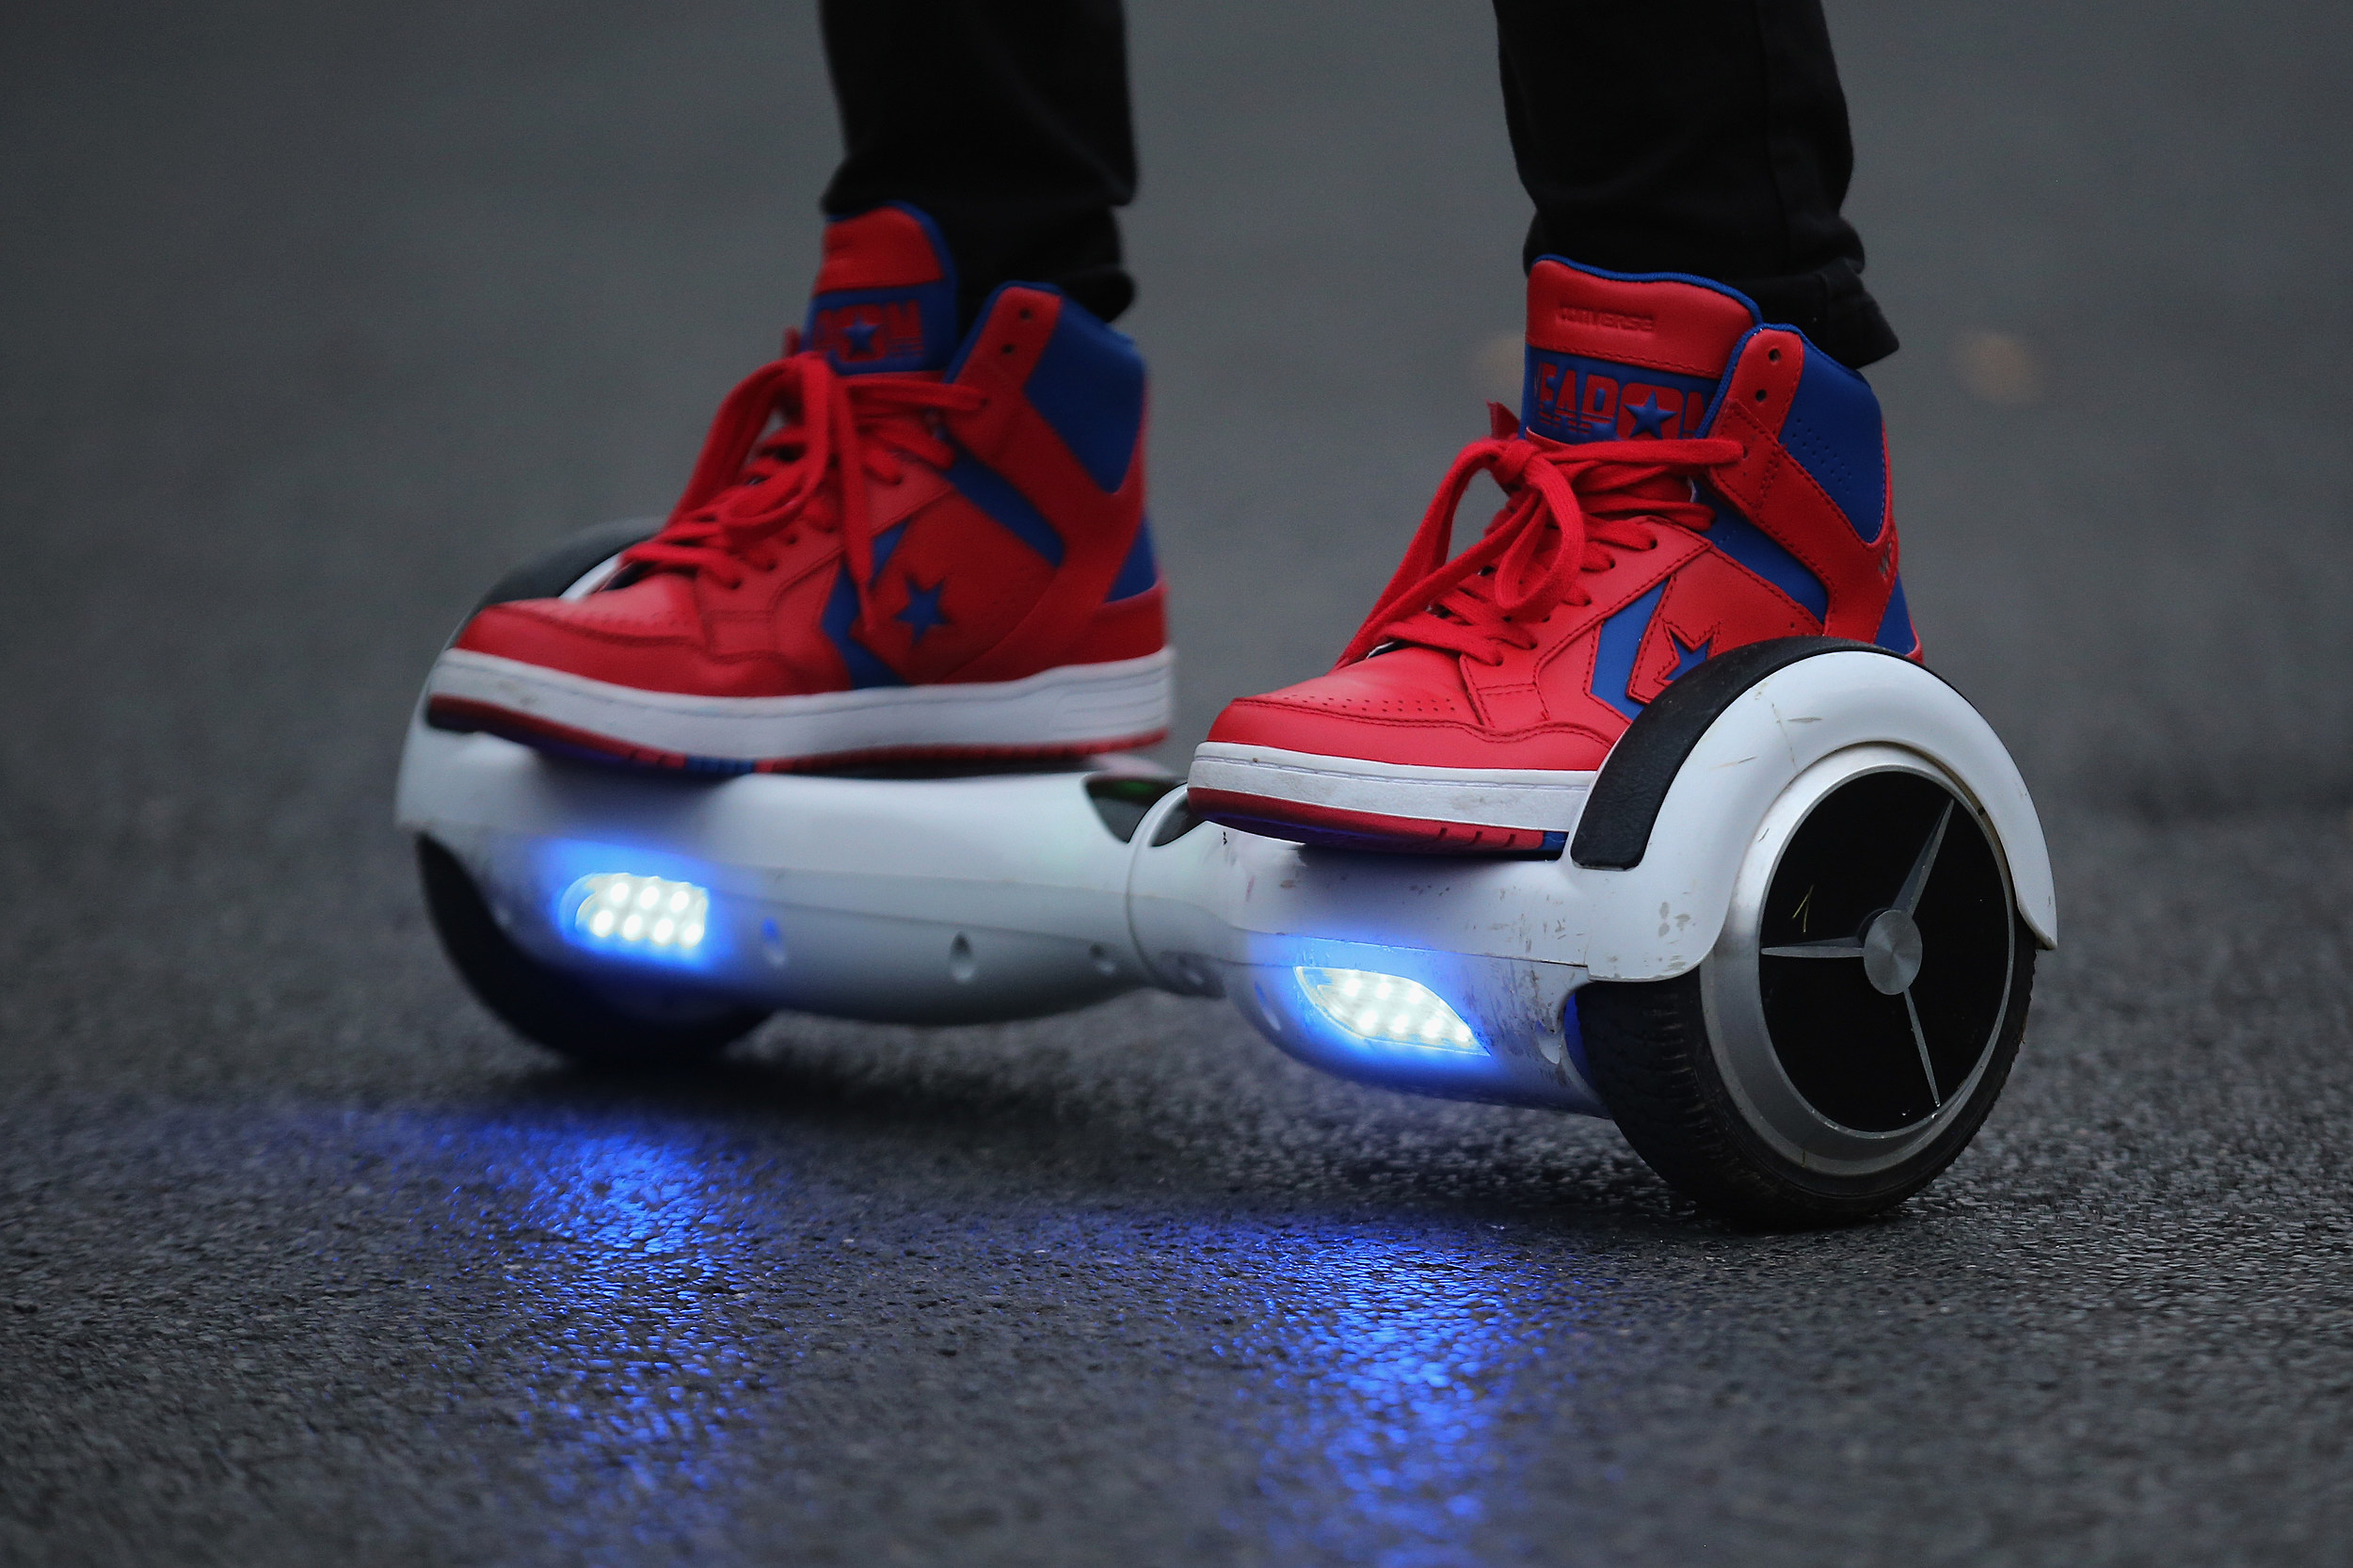 Florida Boy, 13, Fatally Shot After Cousin Falls Off Hoverboard